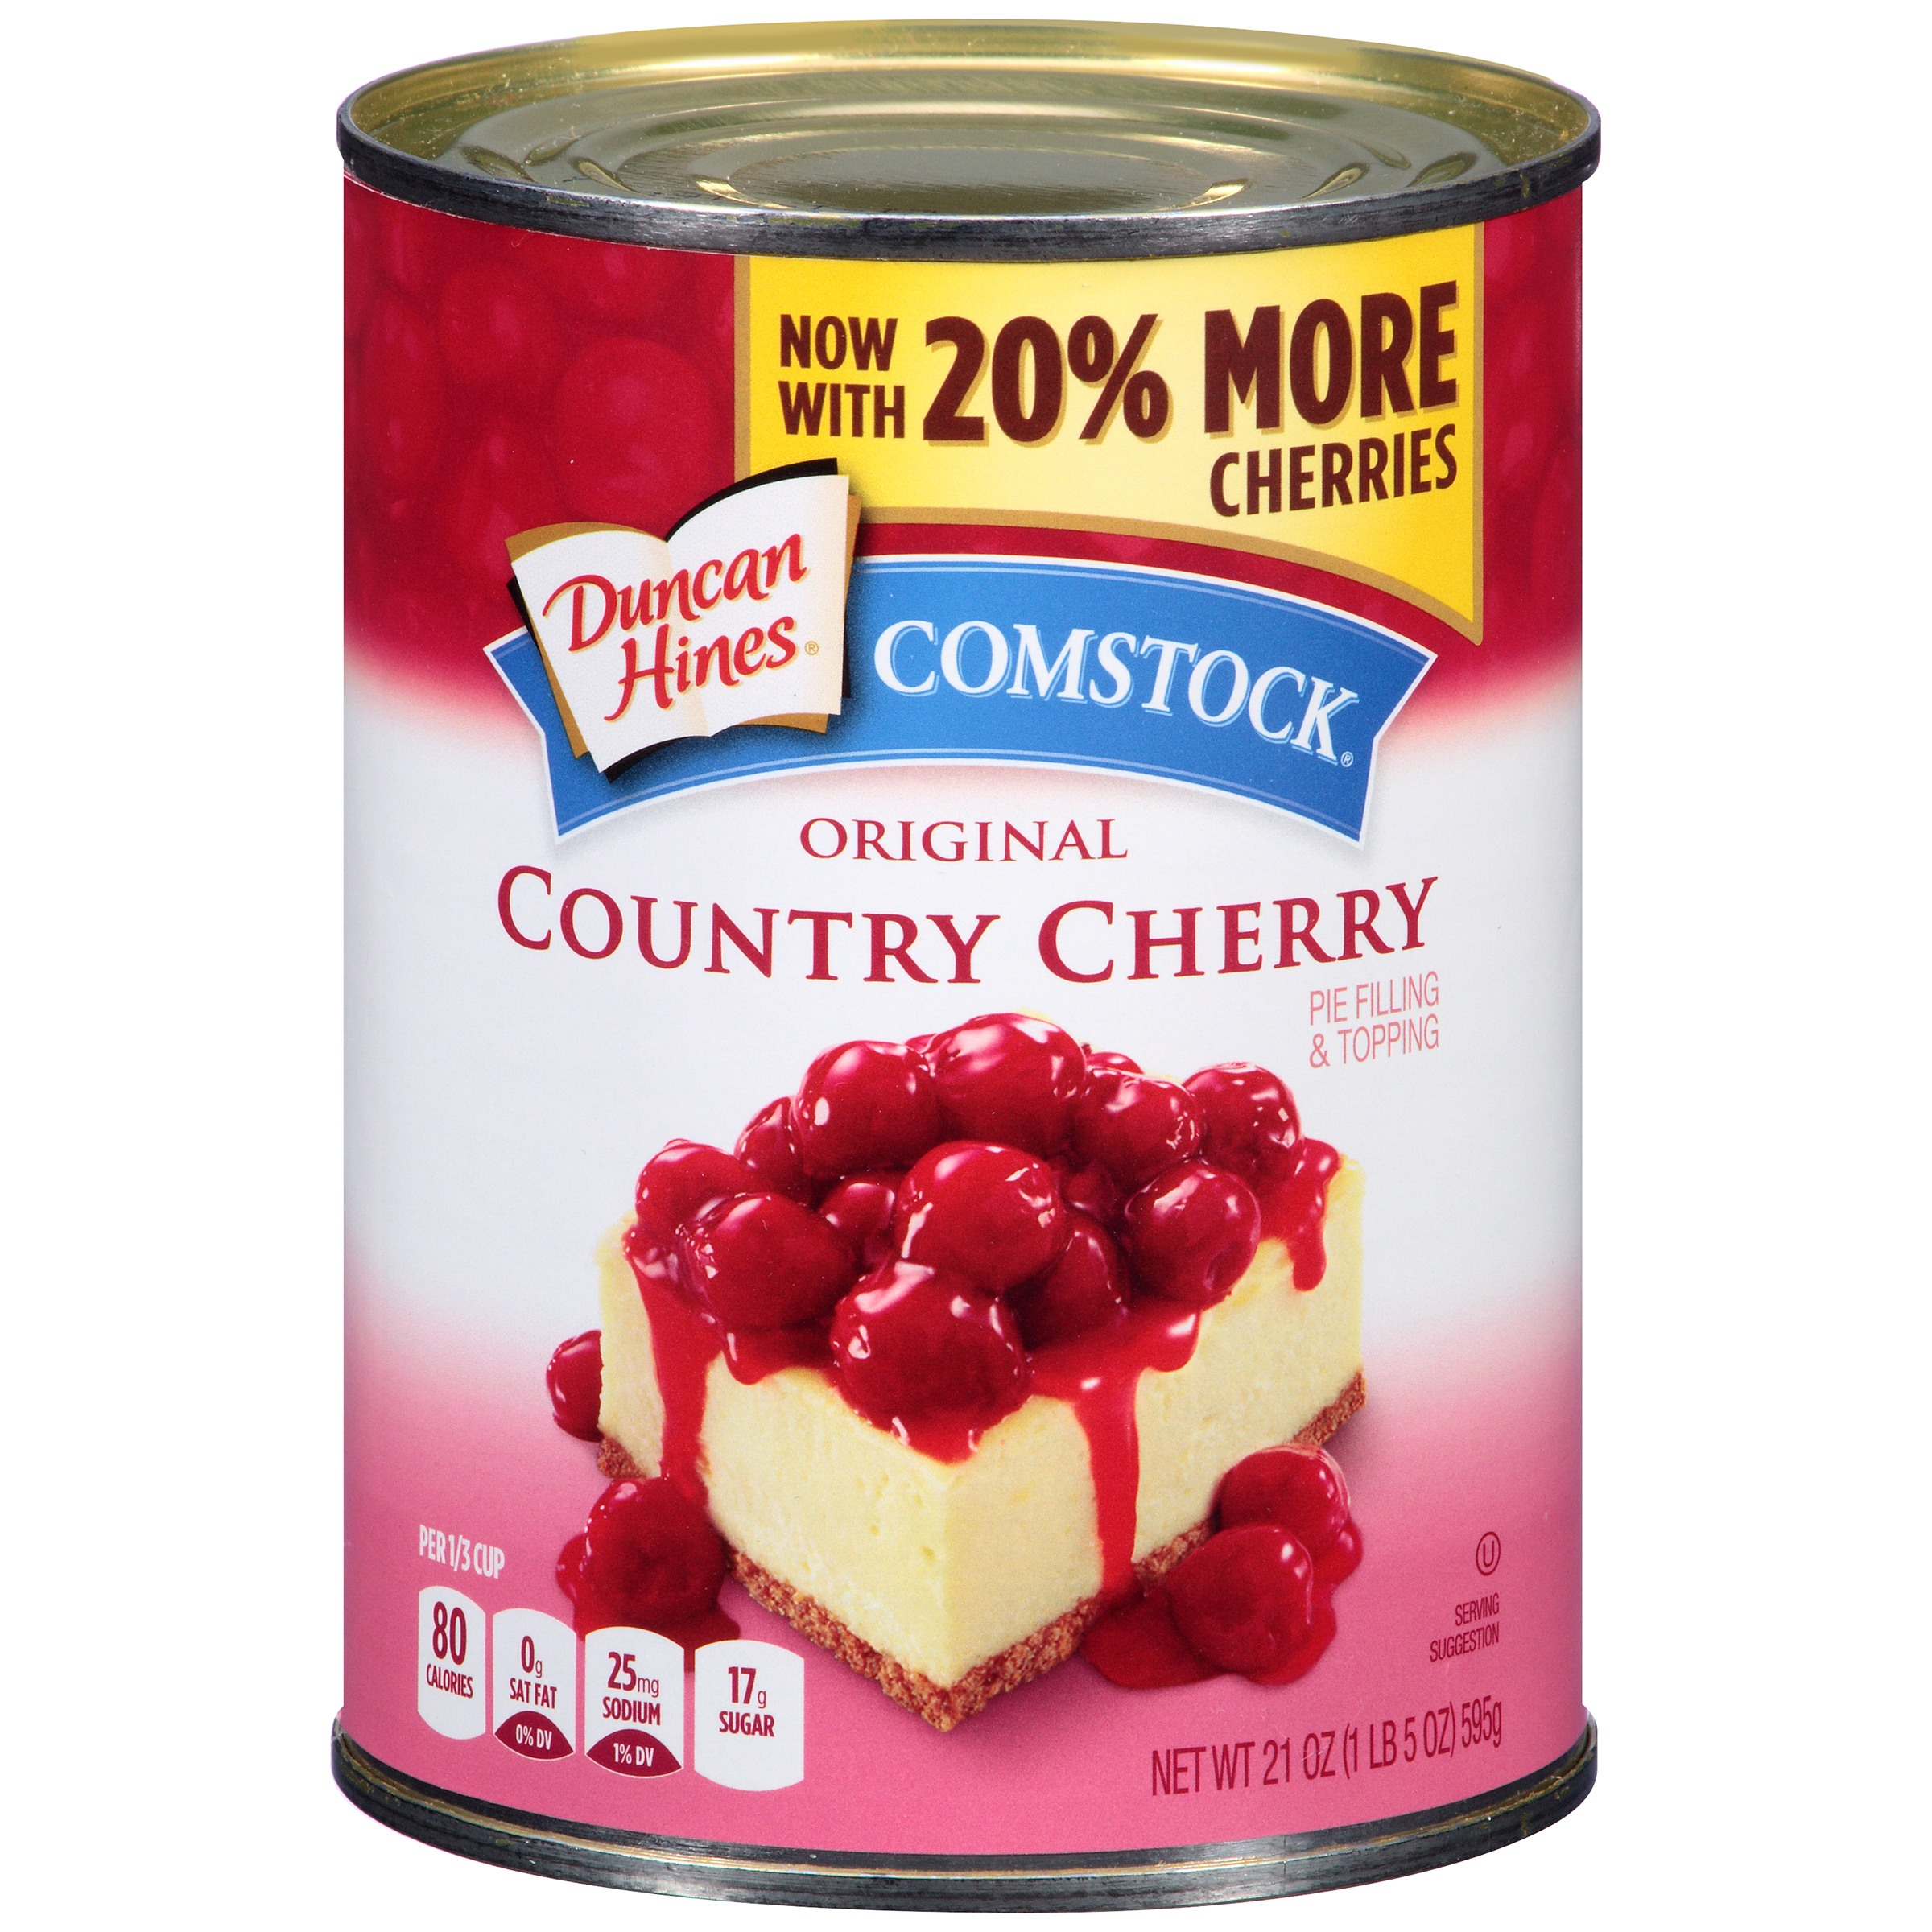 Comstock Original Country Cherry Pie Filling Or Topping, 21 oz by Pinnacle Foods Group LLC,